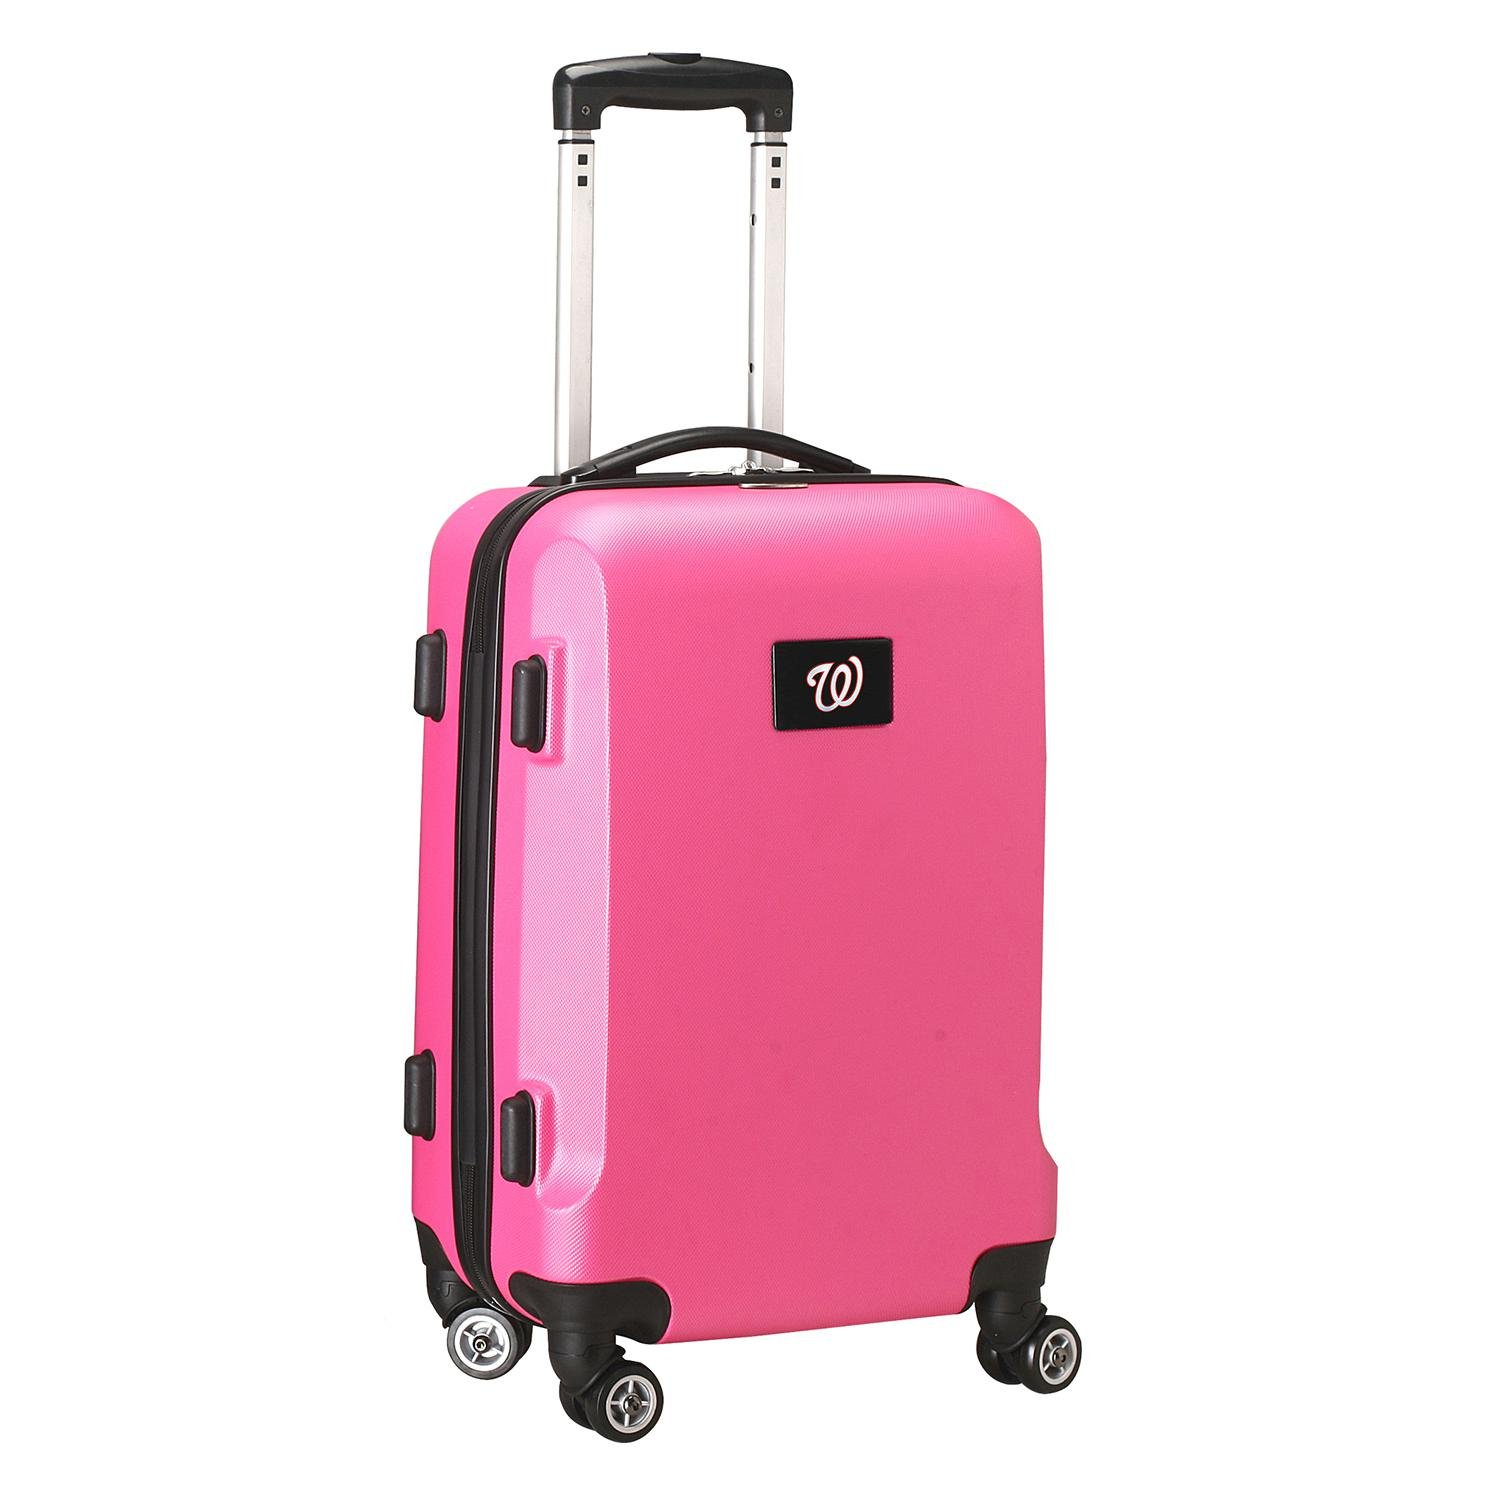 MLB Washington Nationals Carry-On Hardcase Spinner, Pink by Denco